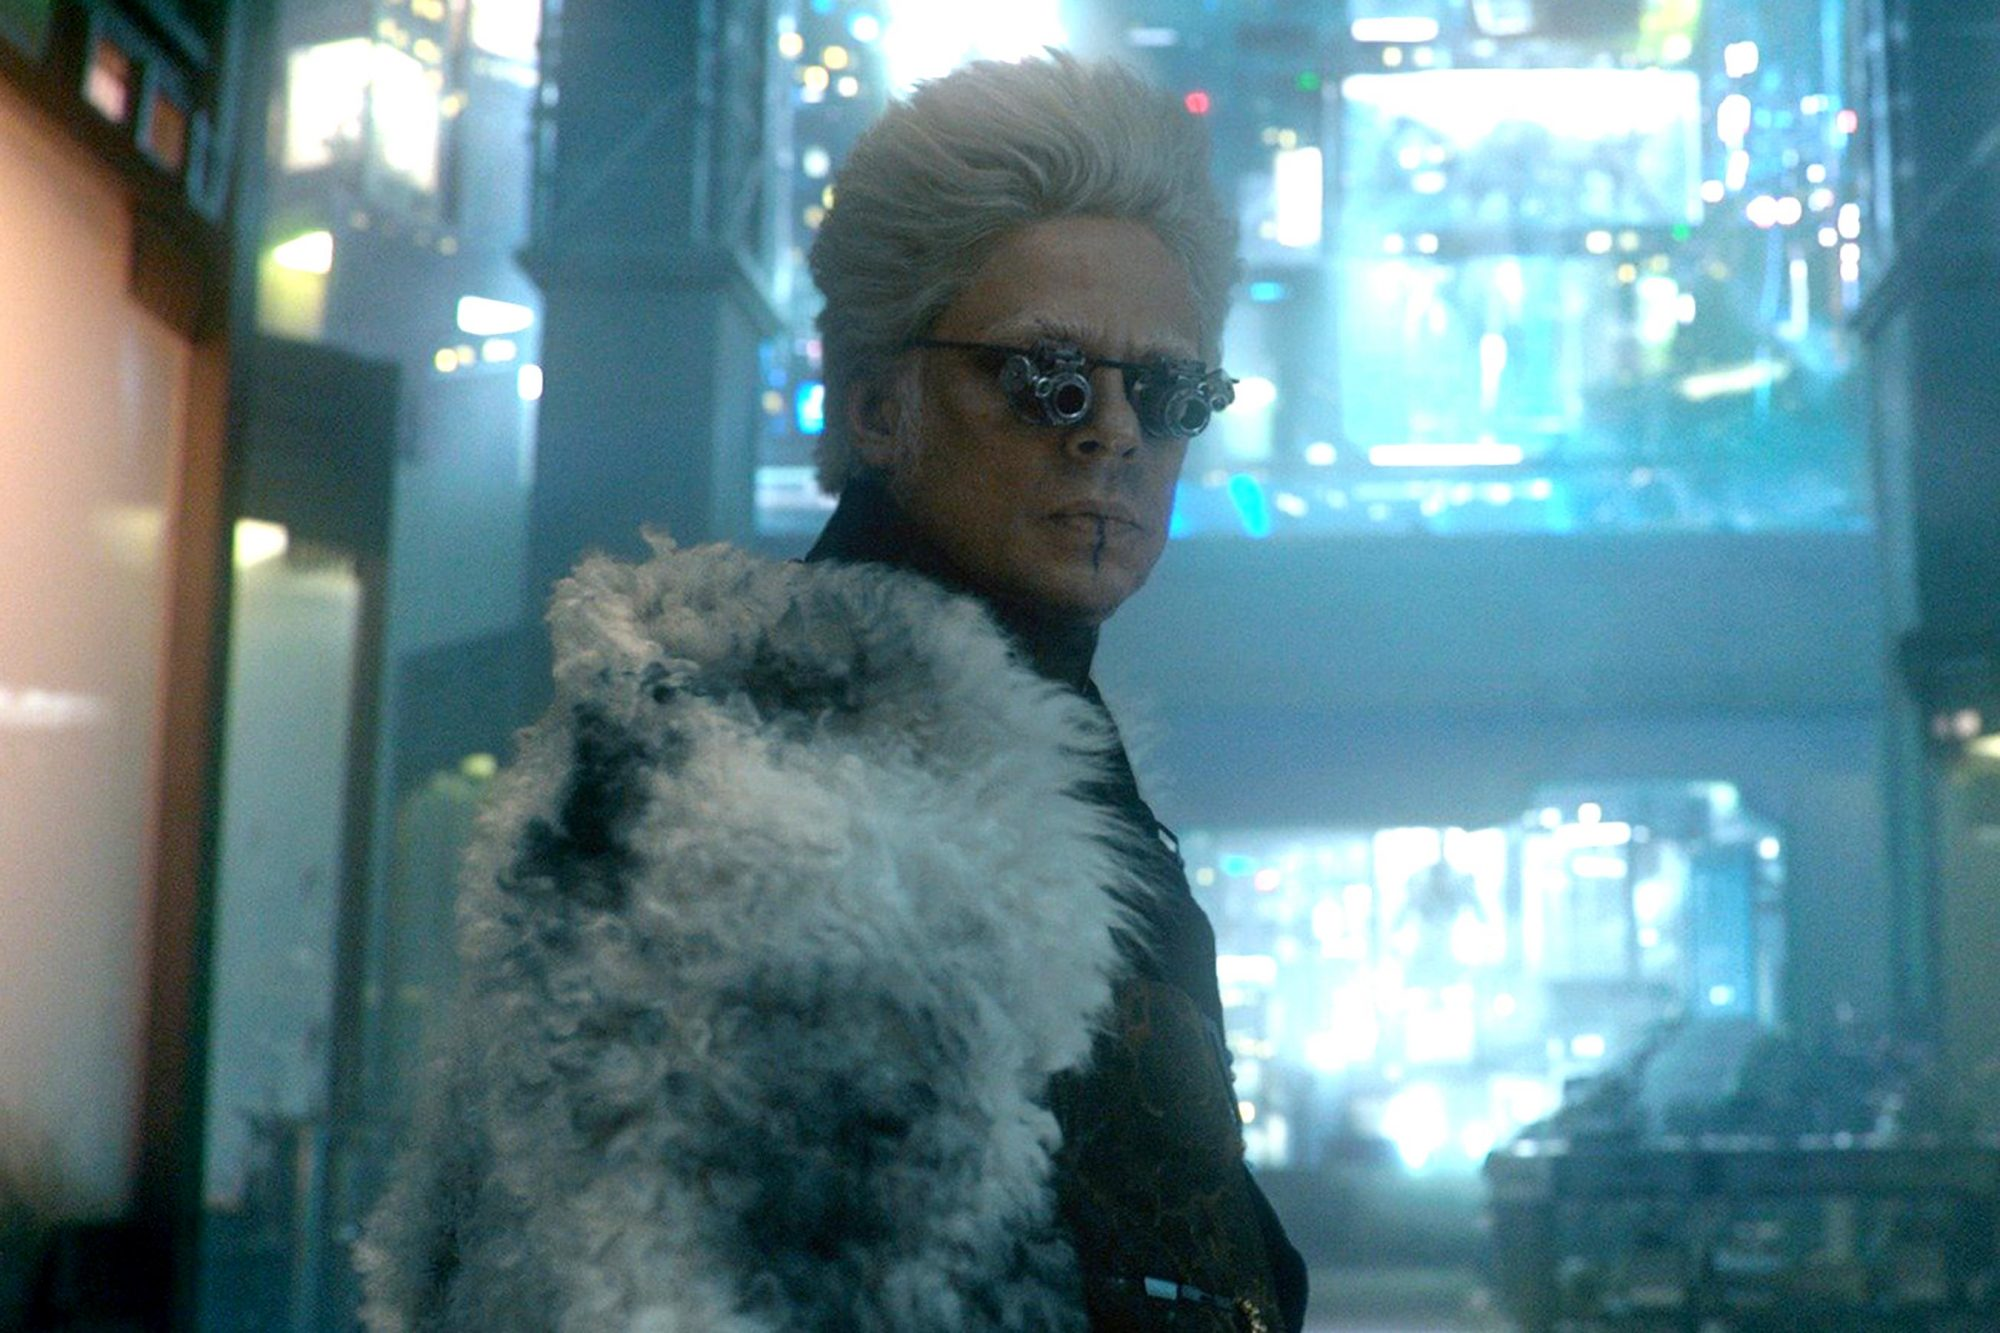 Guardians Of The Galaxy (2014)The Collector/Tanaleer Tivan (Benicio Del Toro)